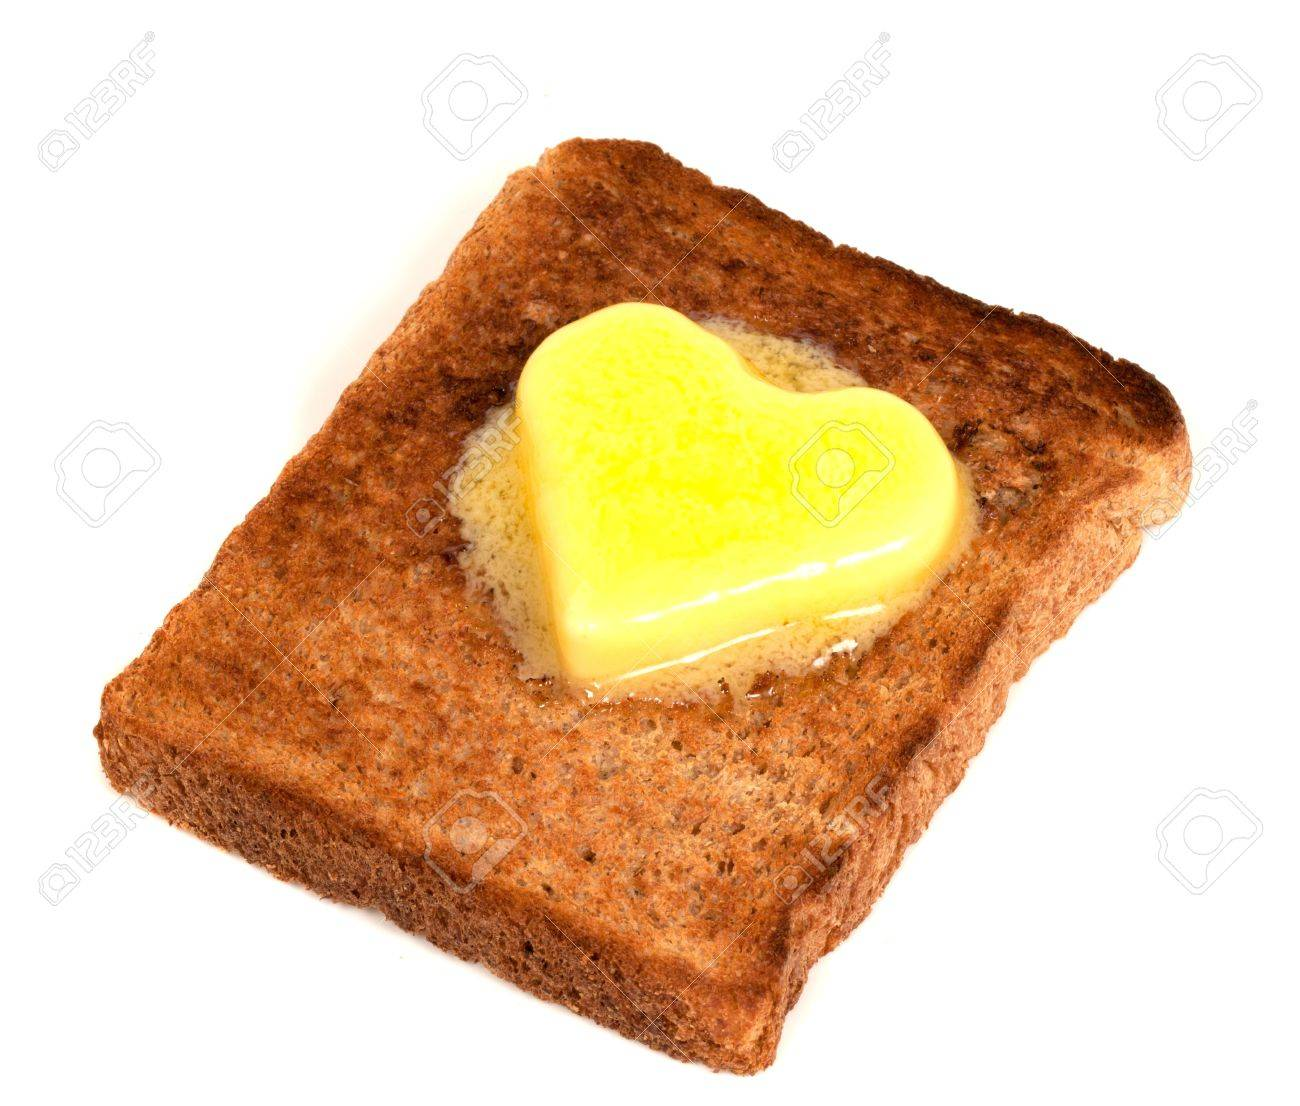 7740981-melting-heart-shaped-butter-on-w